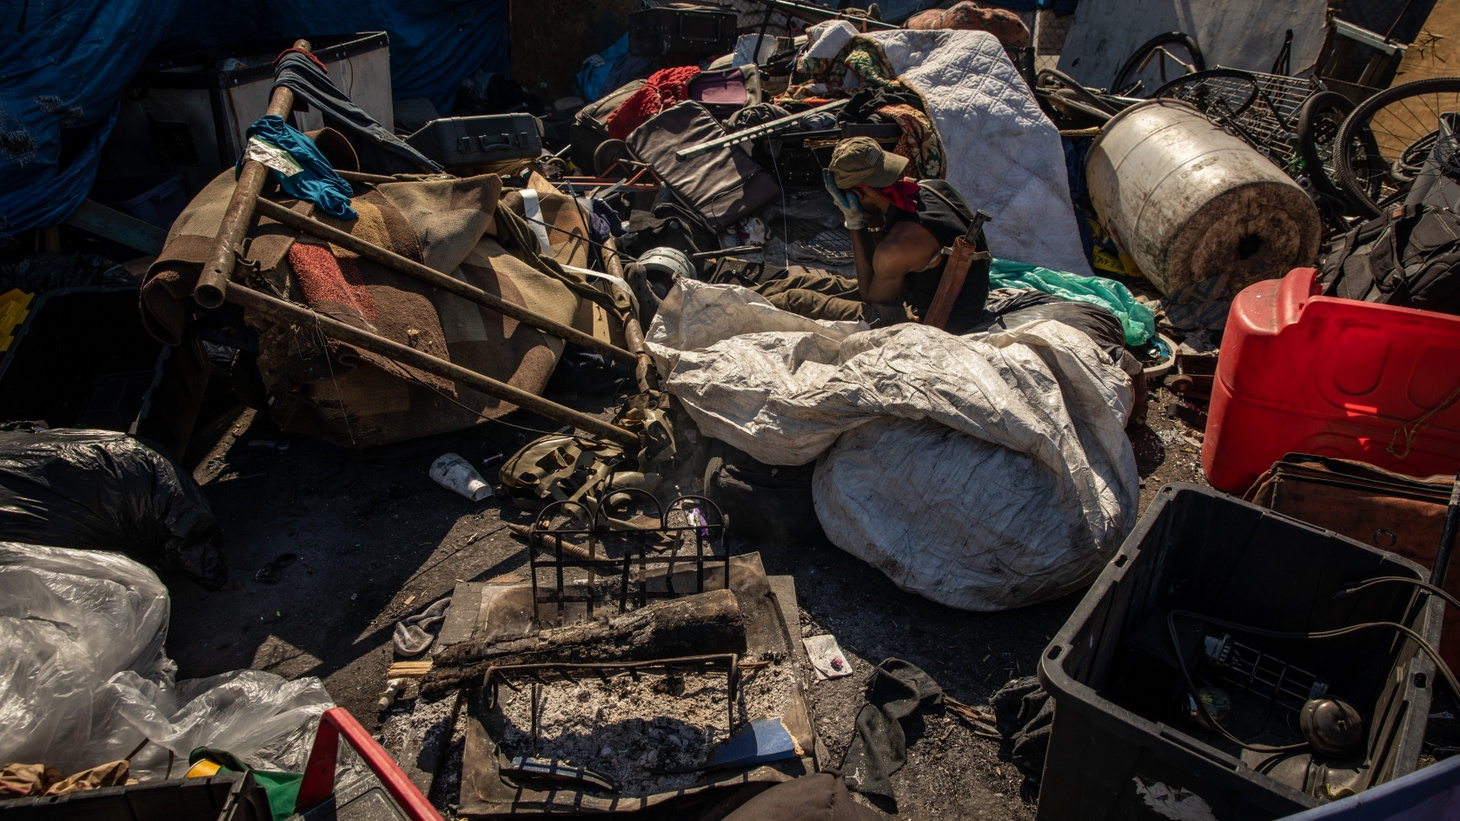 The High Street homeless encampment in Oakland.